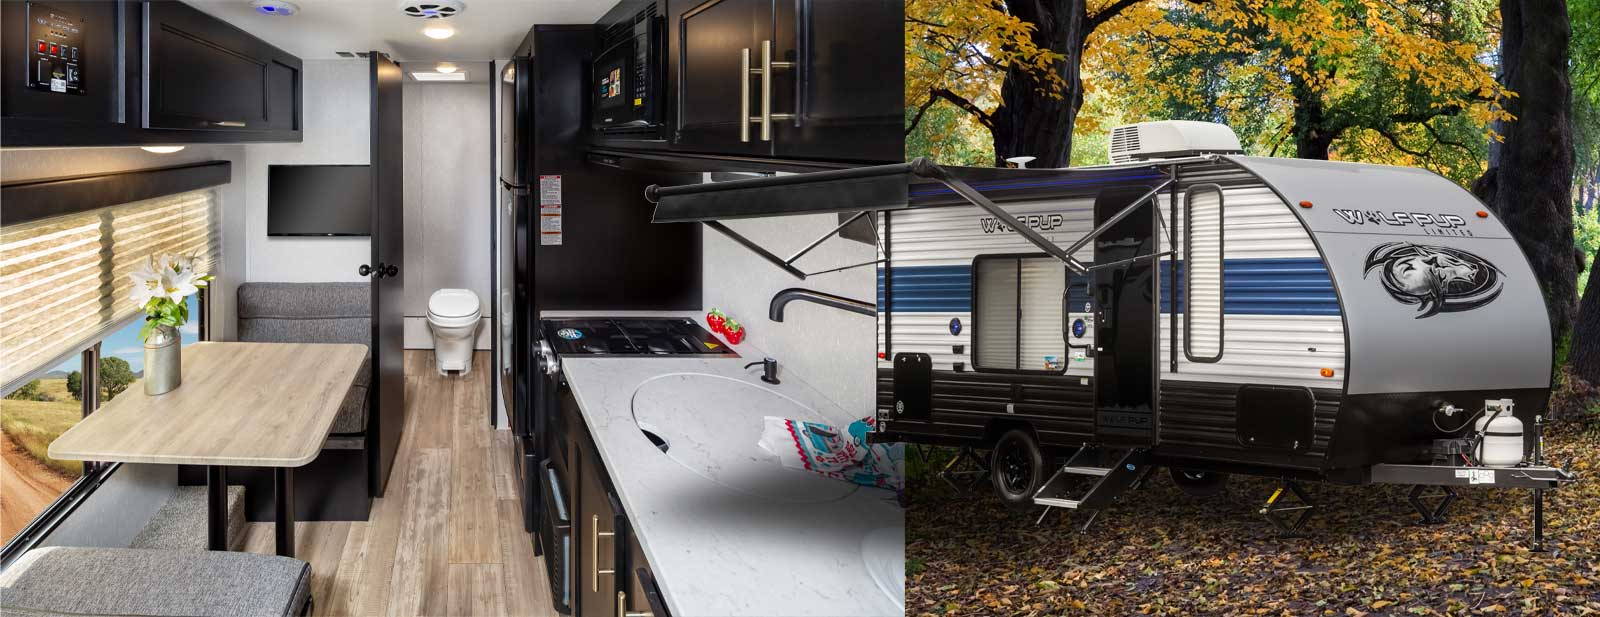 Excellent Cherokee Travel Trailer Owners Manual Samsung Tv Smart Tv Home Interior And Landscaping Ologienasavecom